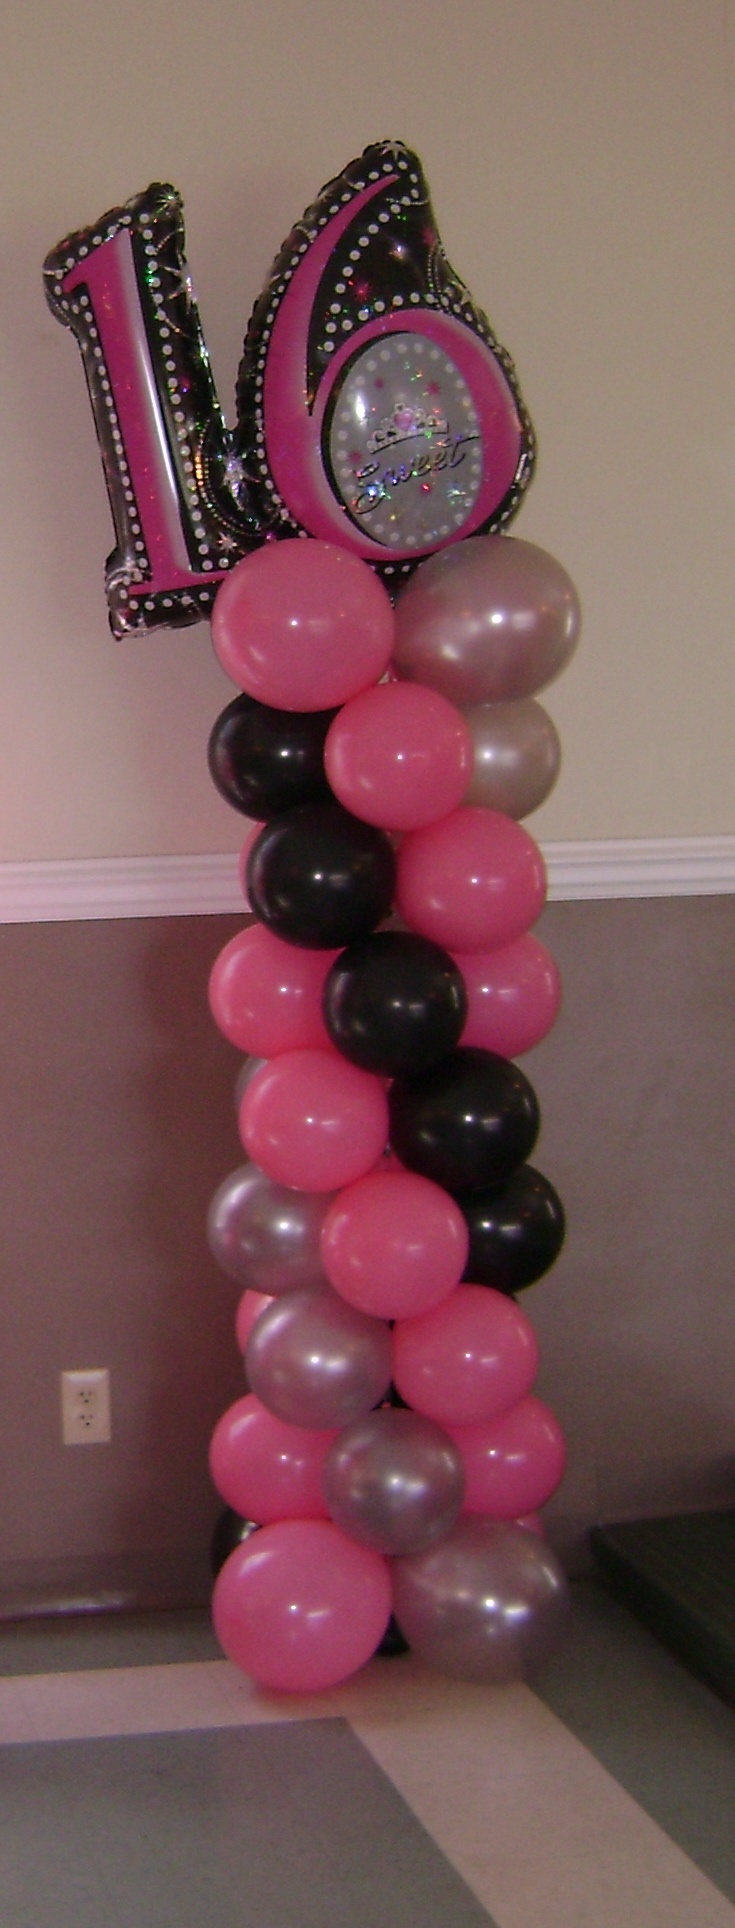 Where can you buy balloon arch kits in delaware - Sweet 16 Balloon Column Sweet16 Balloon Column